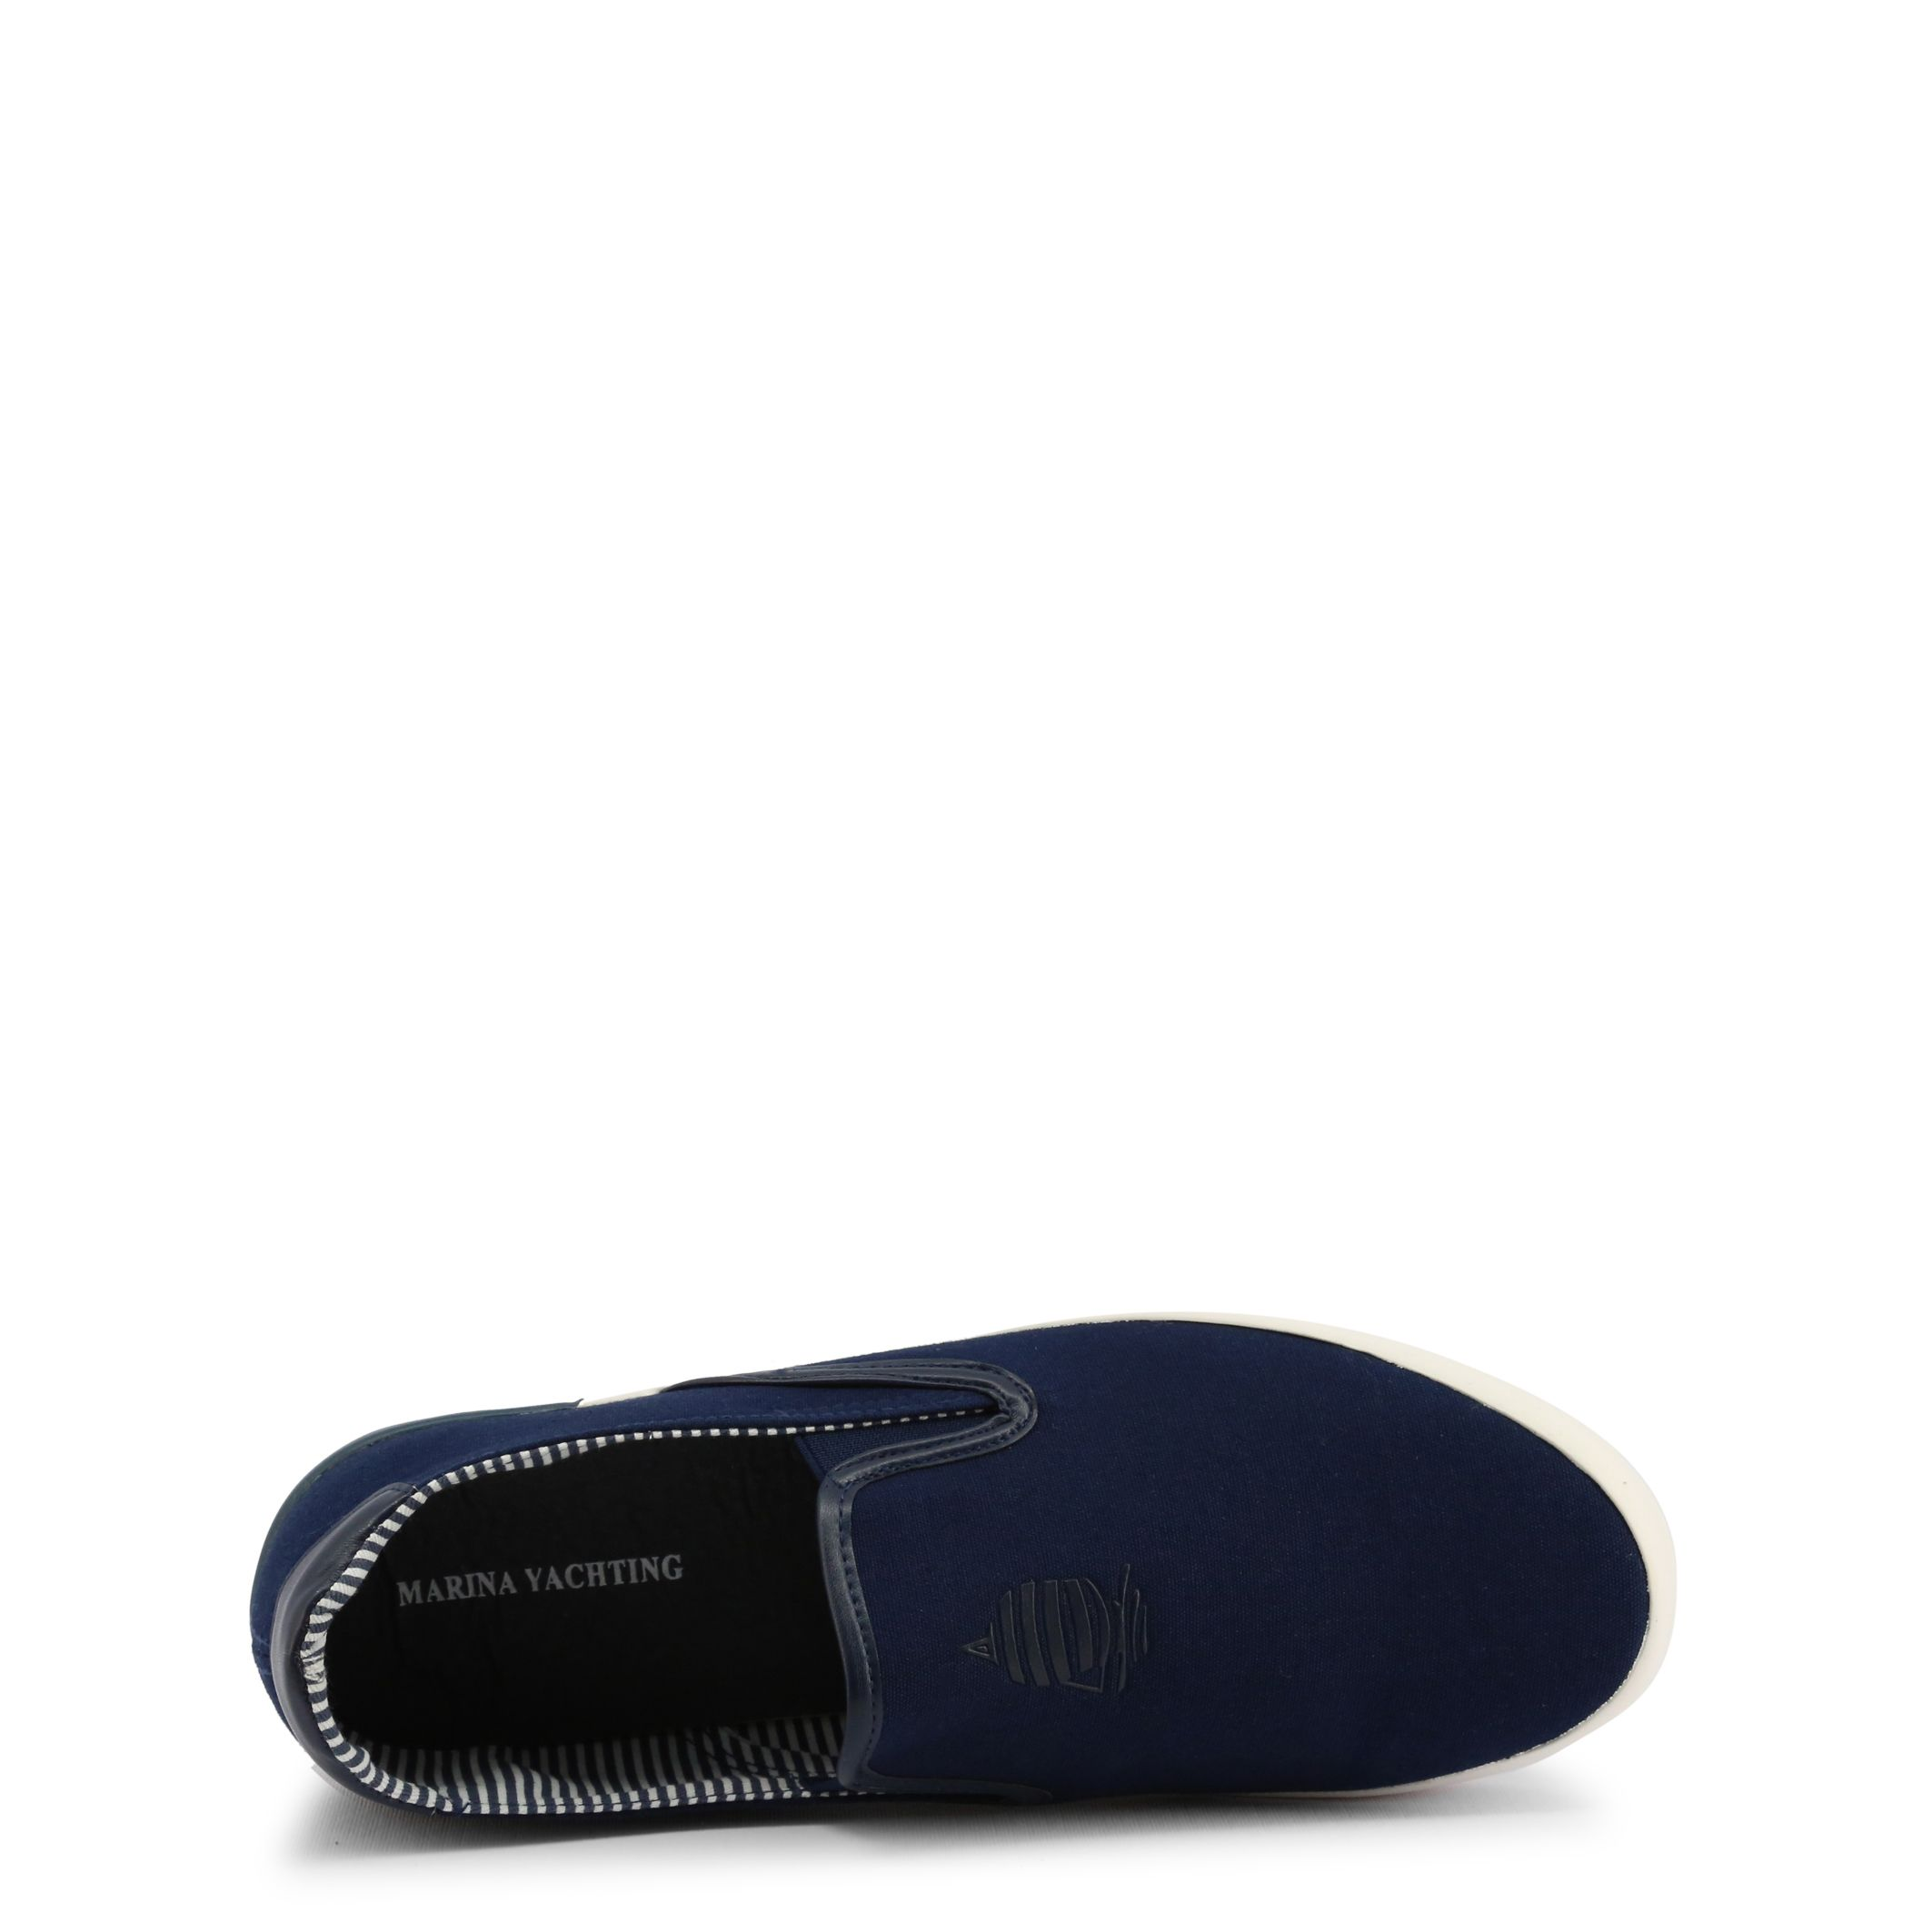 Marina Yachting - VENTO181M61896 | You Fashion Outlet